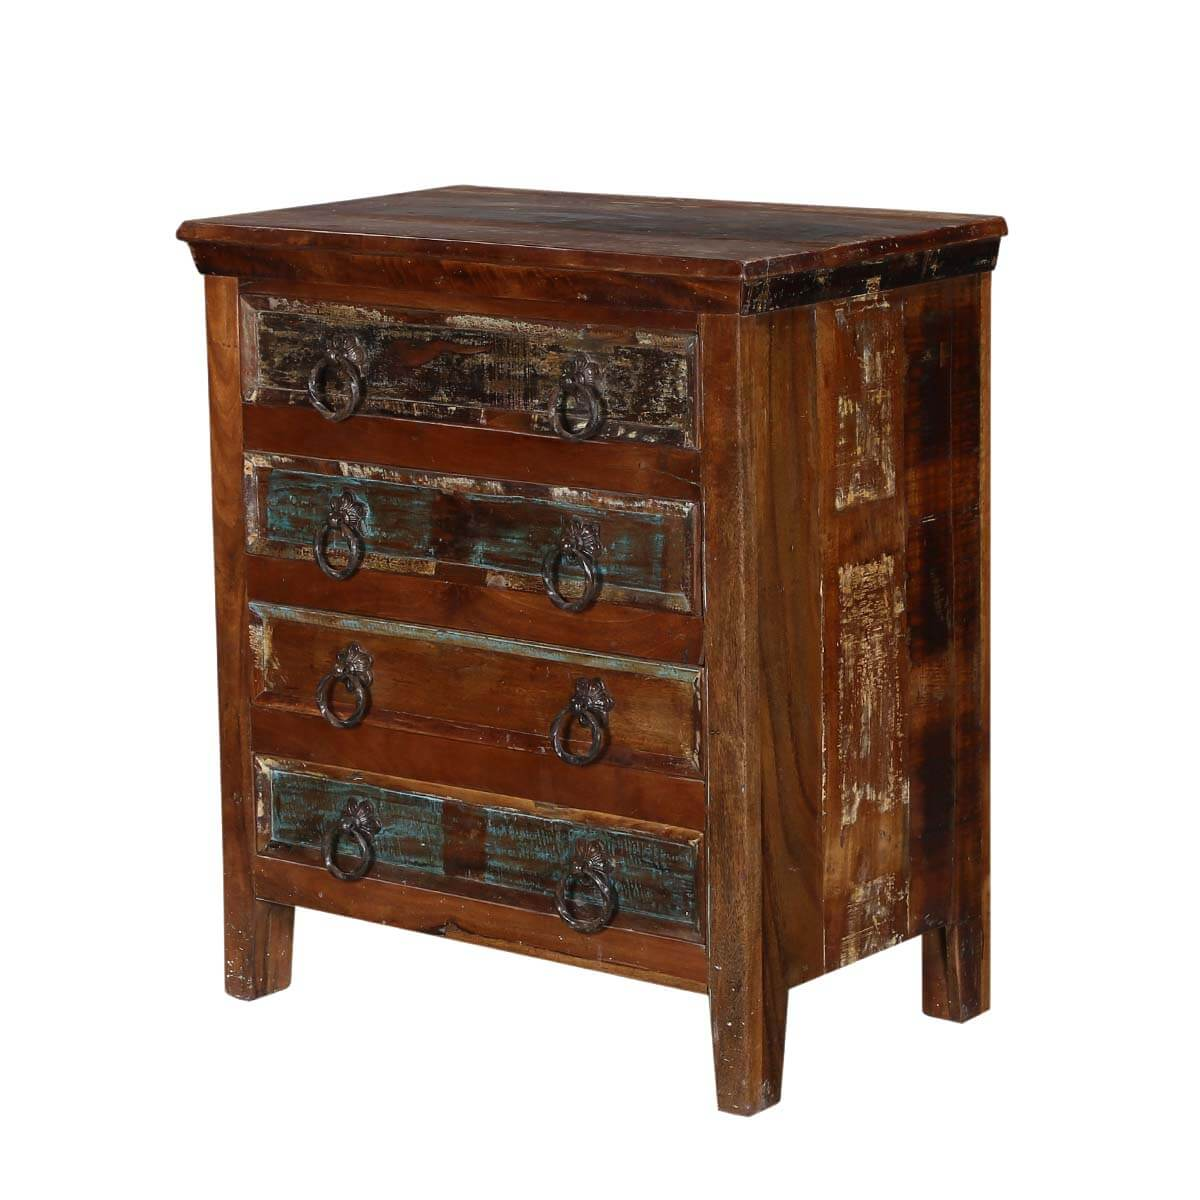 turquoise trail 30 rustic 4 drawer medium brown nightstand table. Black Bedroom Furniture Sets. Home Design Ideas